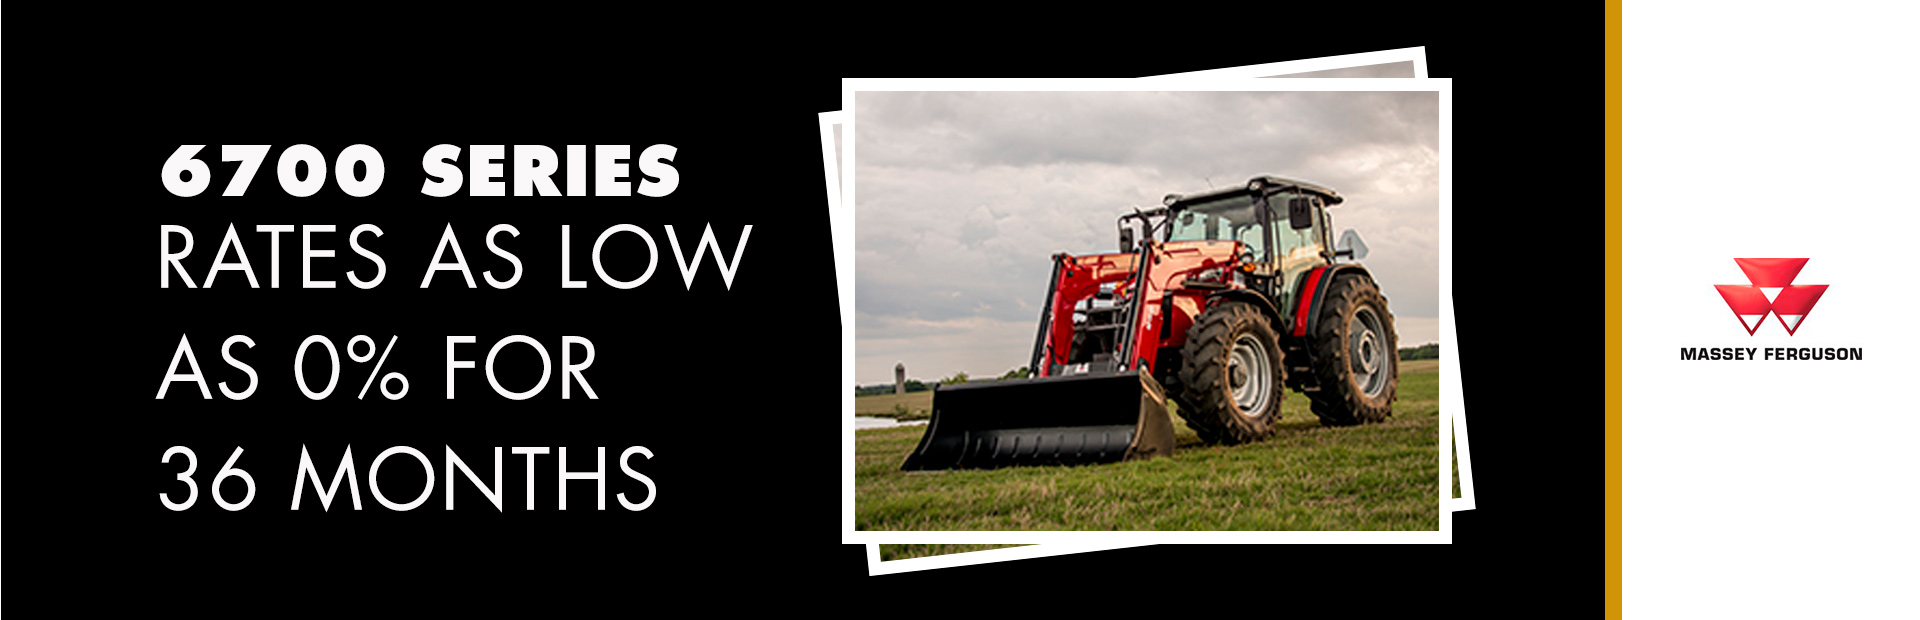 Massey Ferguson: 6700 Series - Rates as low as 0% for 36 Months